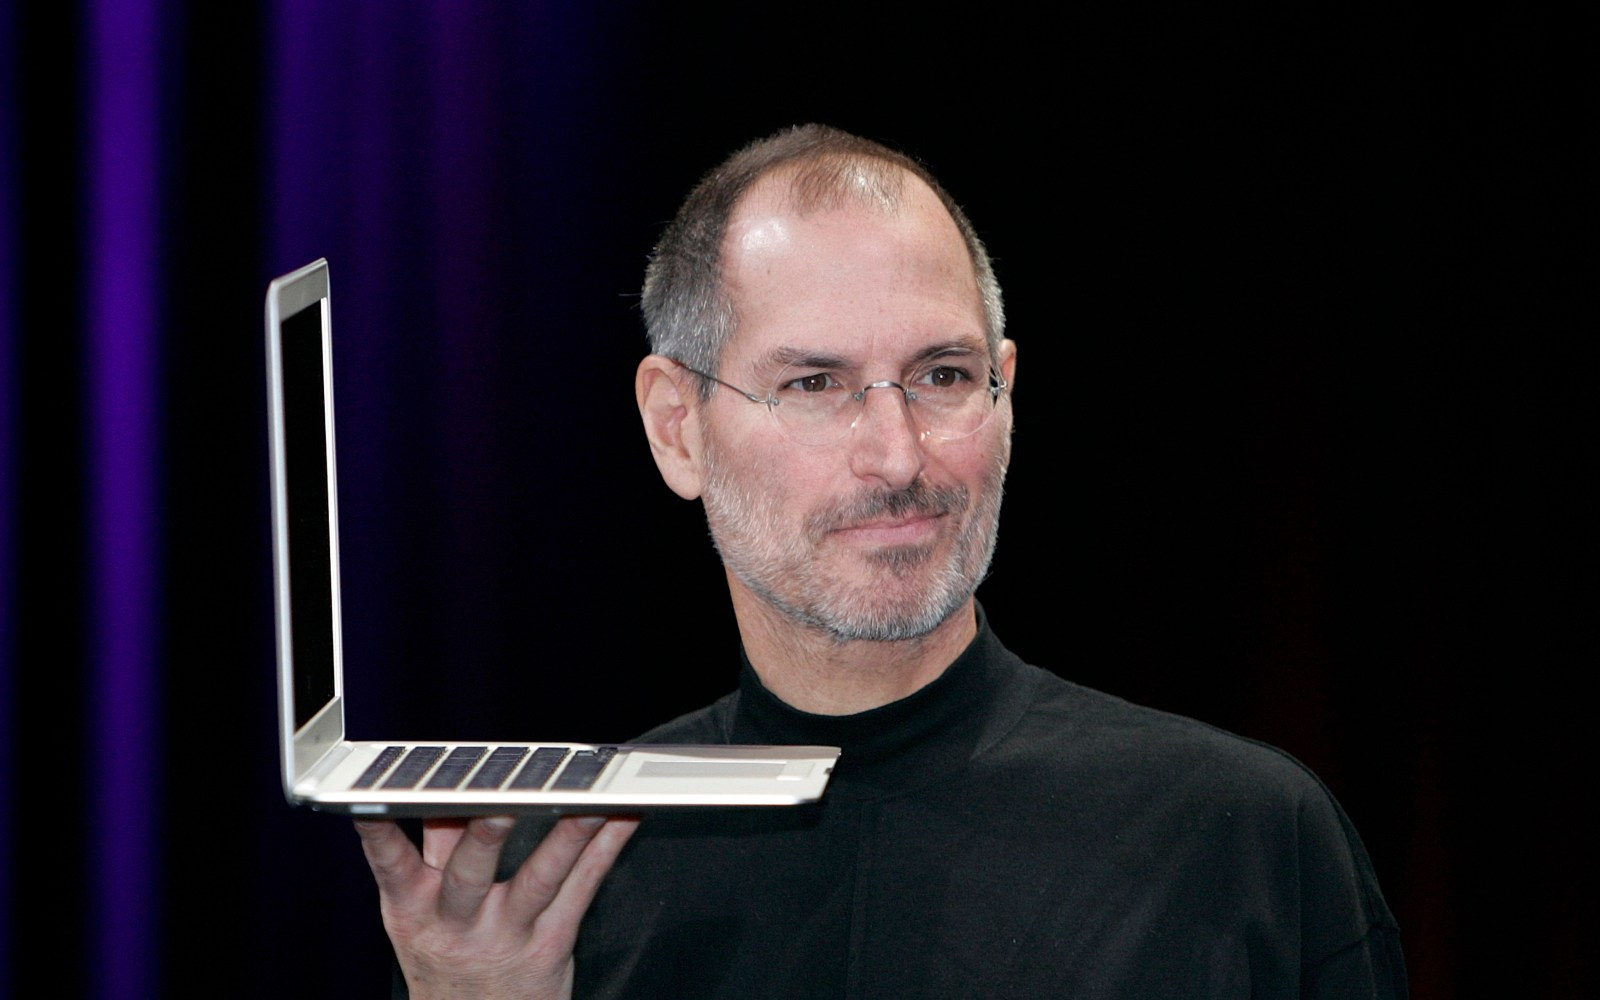 Macworld/iWorld conference going on hiatus, no event in 2015